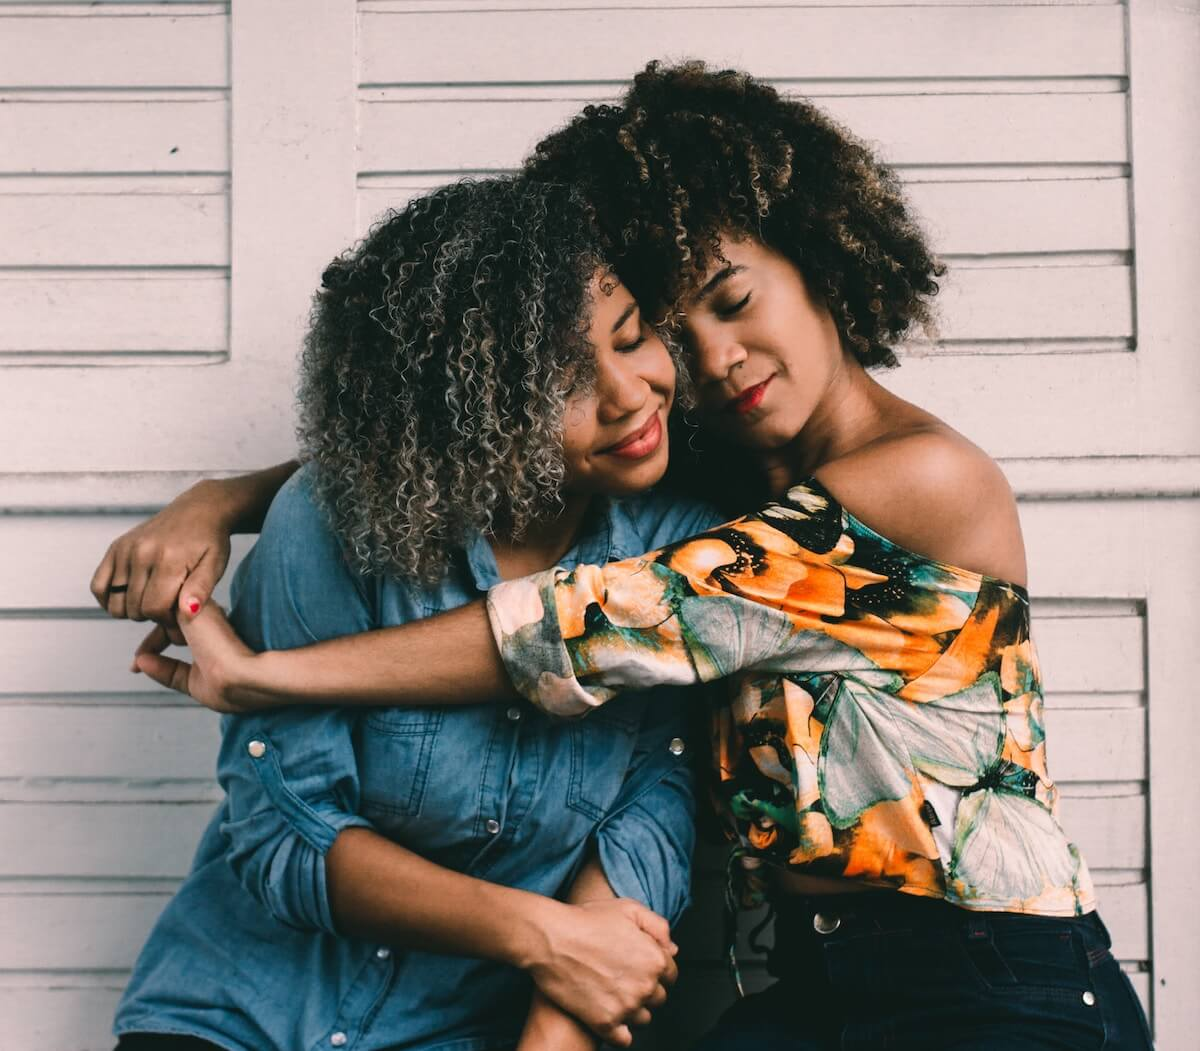 Unsplash: Two friends hugging sweetly and smiling together